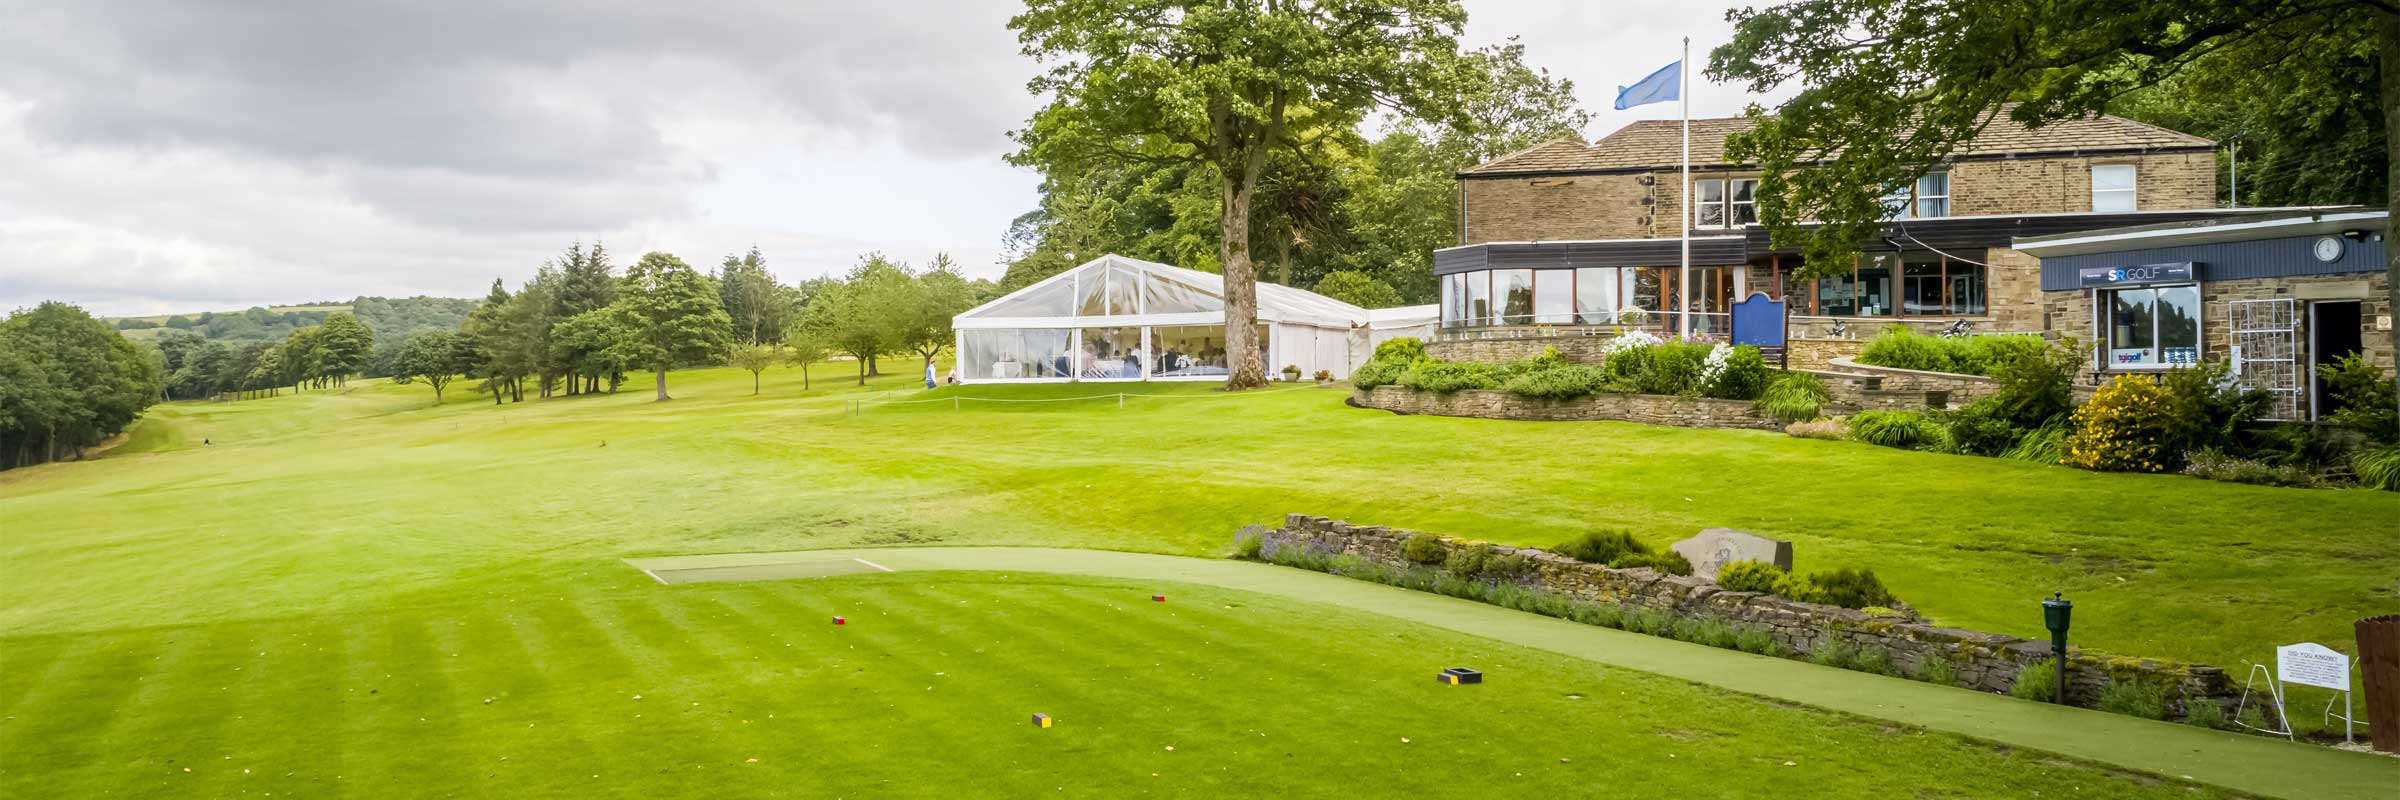 Meltham Golf Club